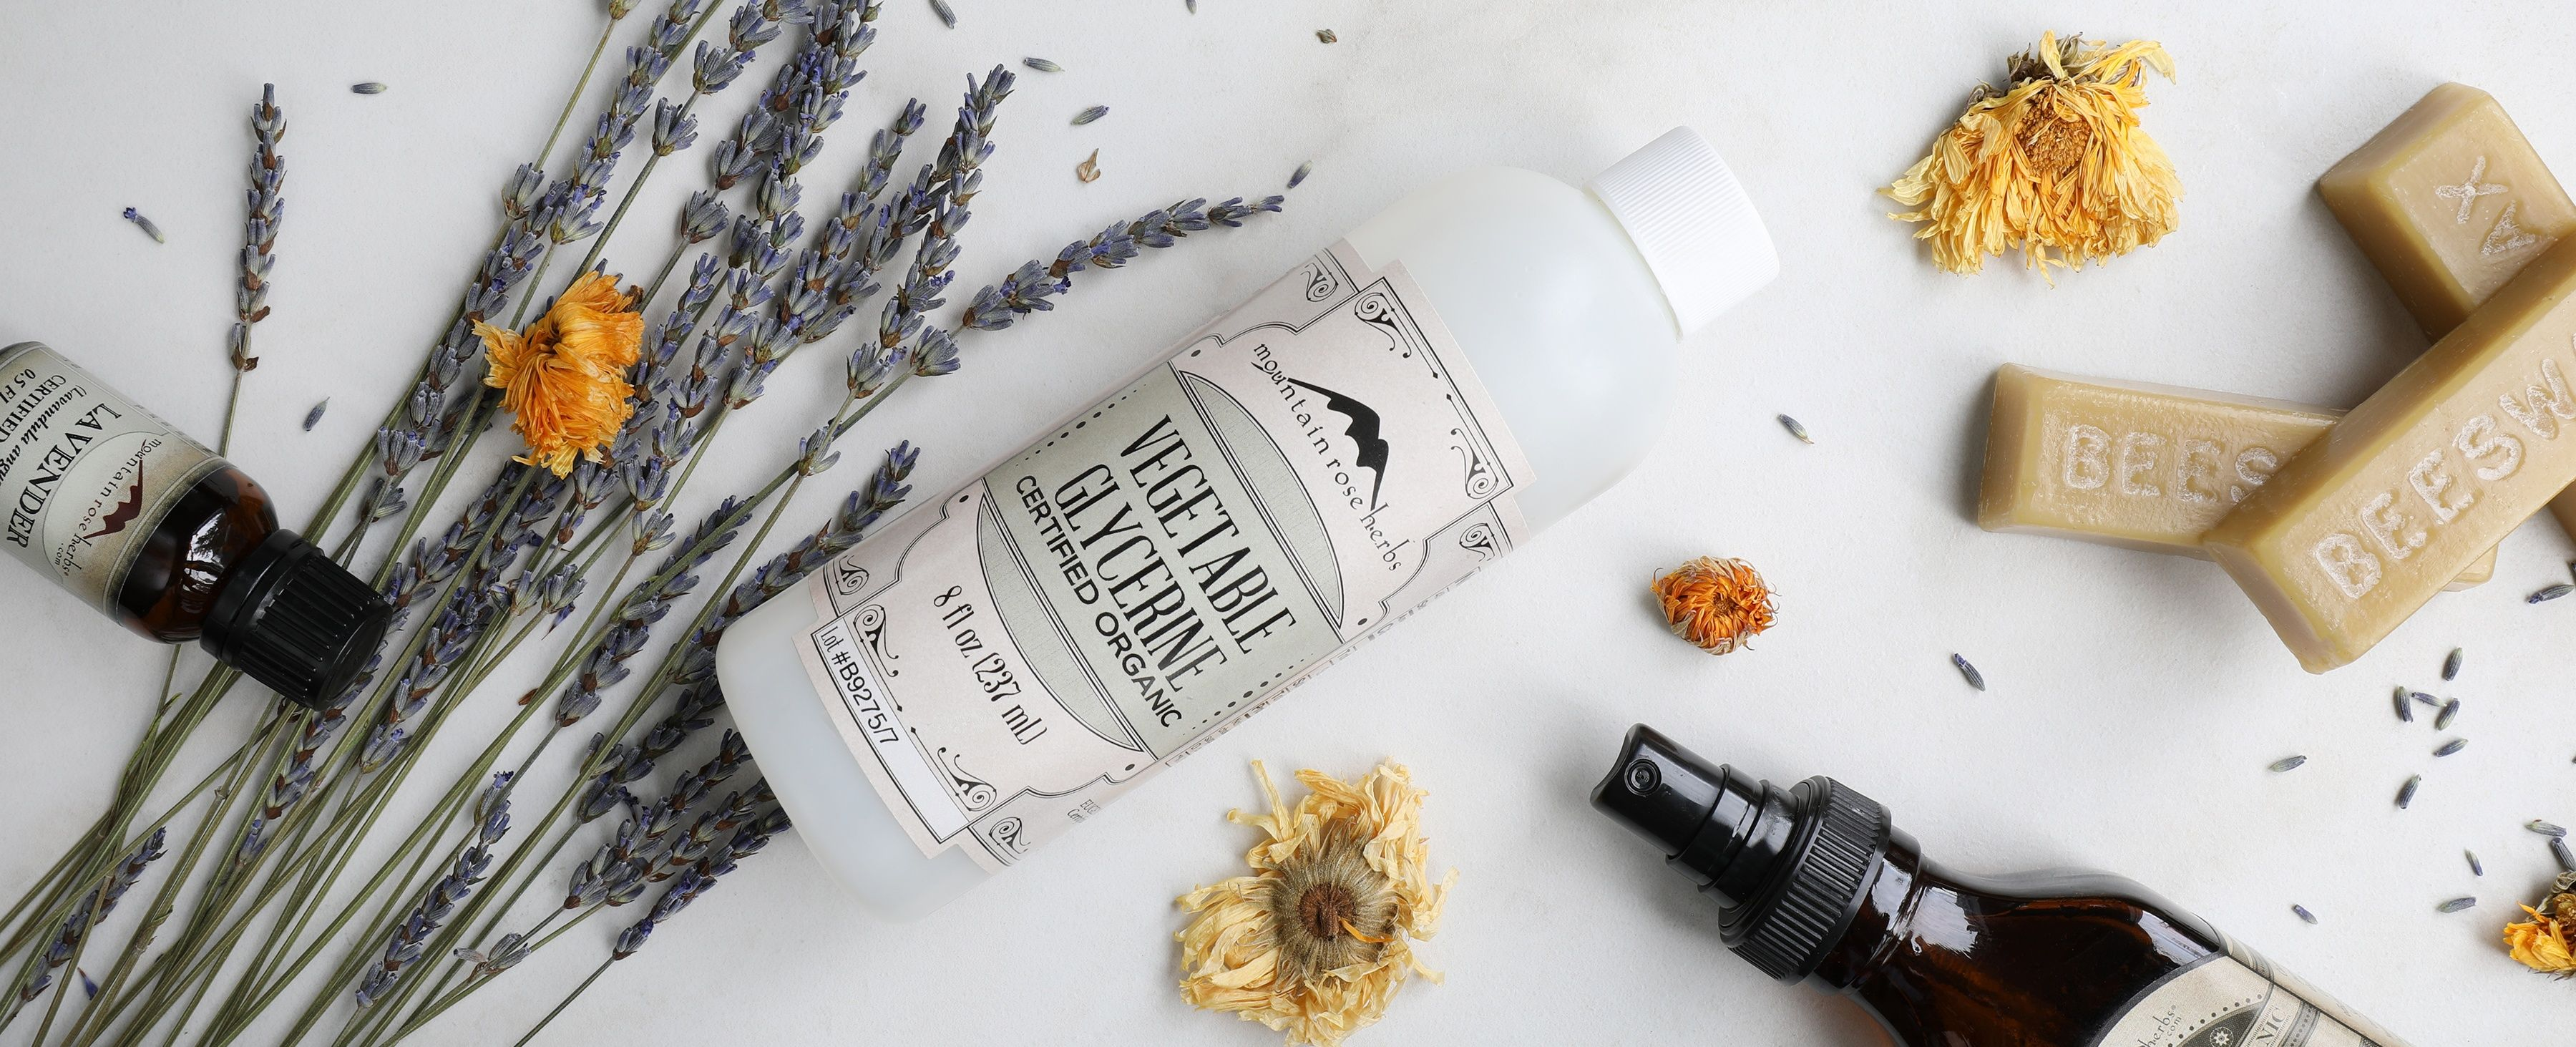 What is Vegetable Glycerine and How is it Used? | kitchen herbalism